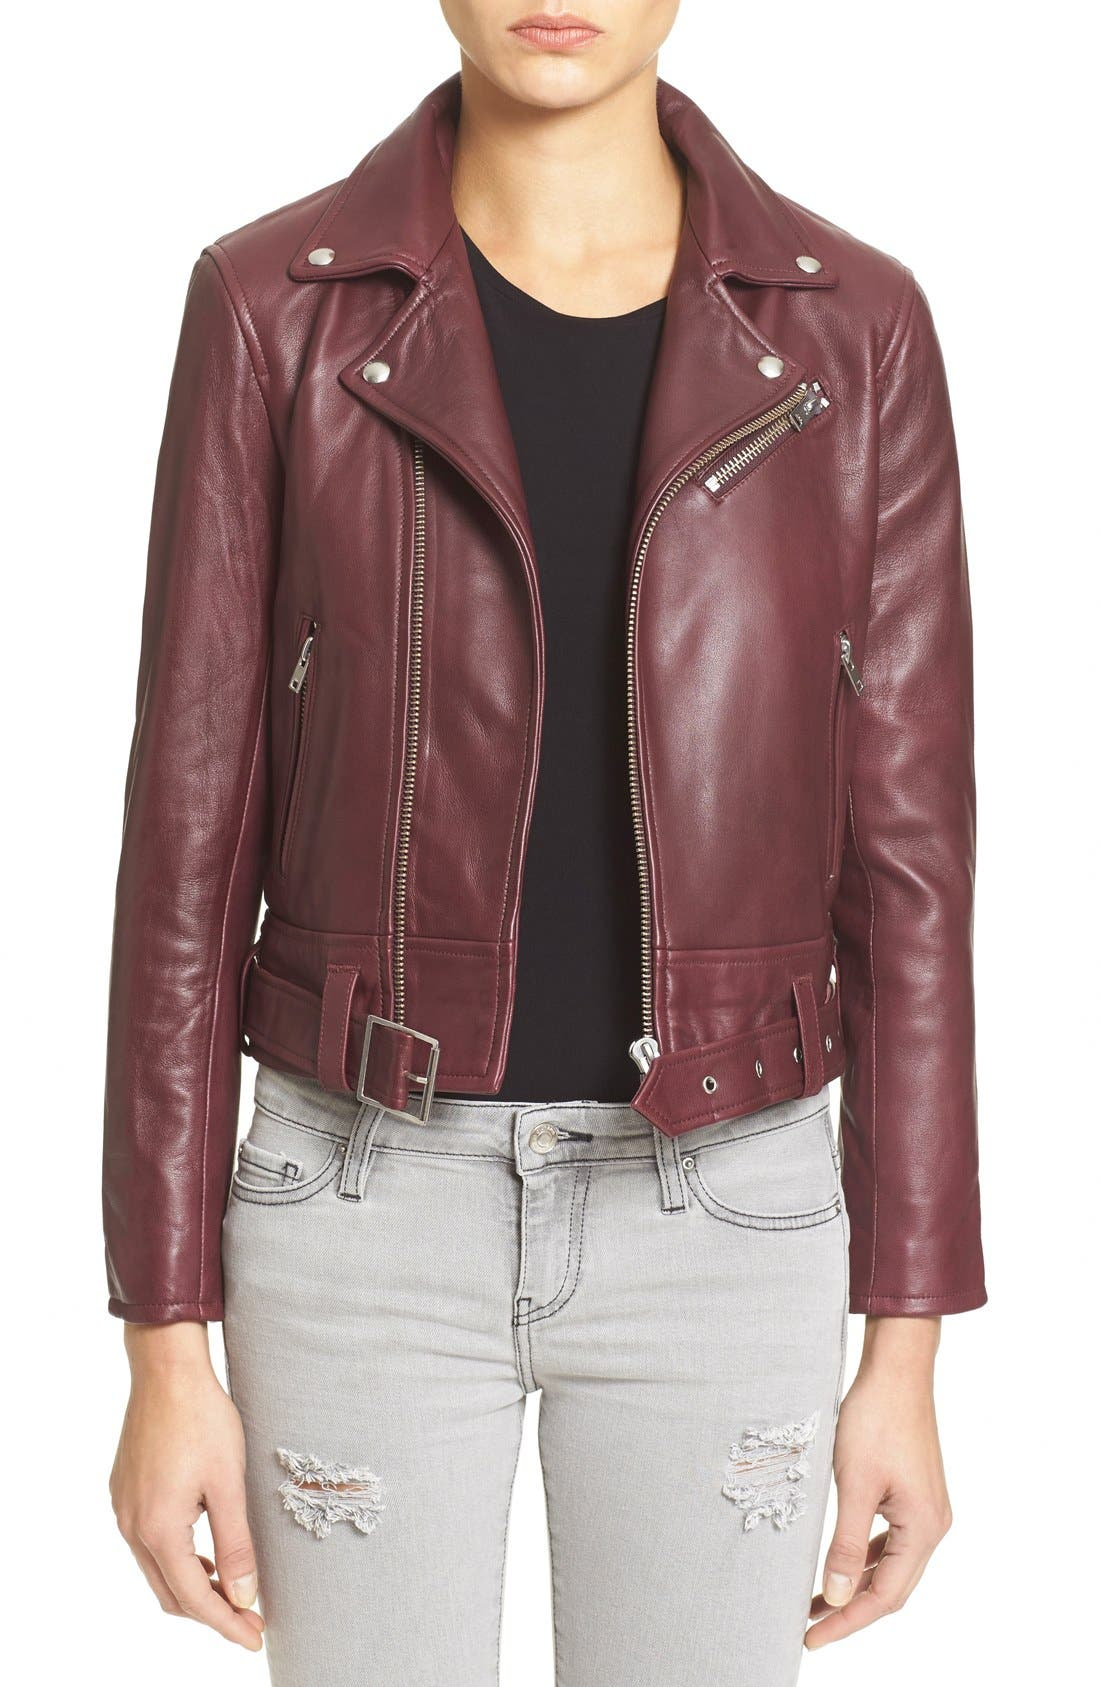 IRO 'Gant' Belted Leather Jacket, Main, color, 950